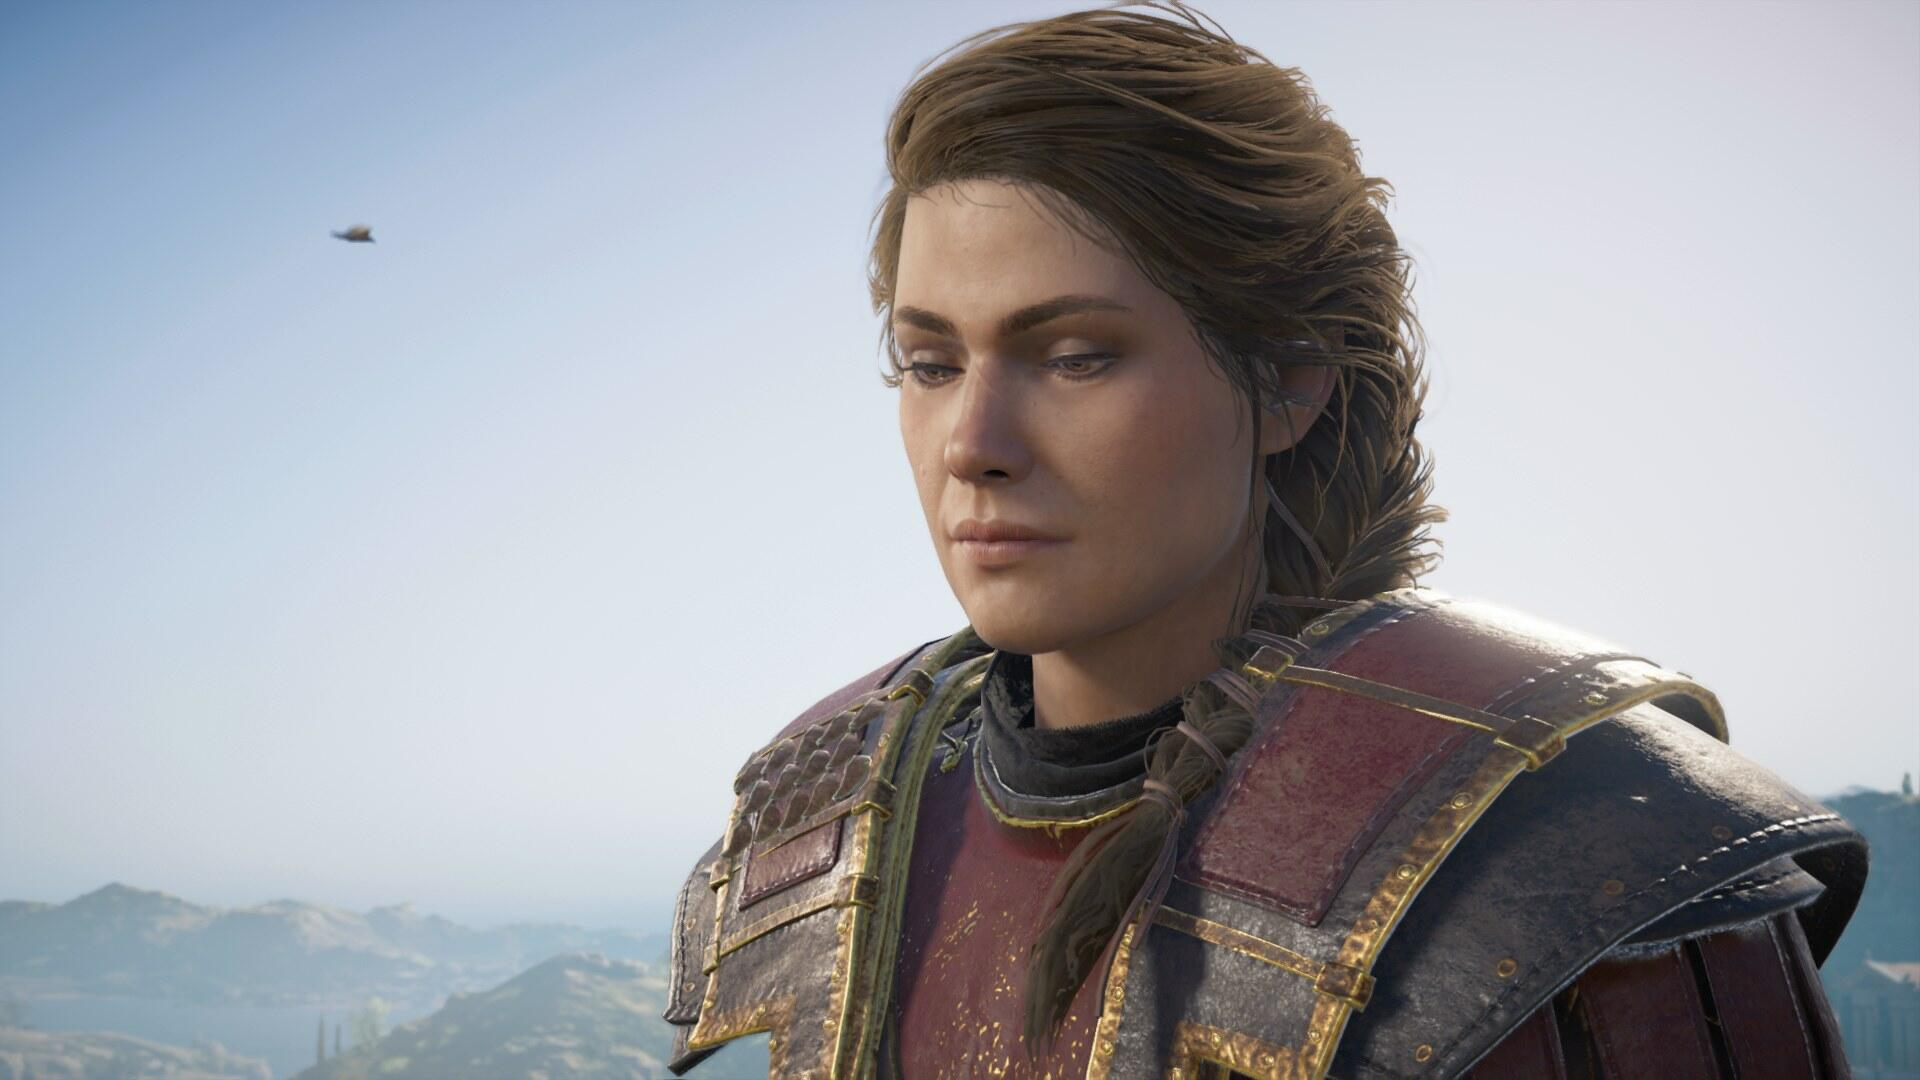 Assassin's Creed Odyssey DLC Contradicts Its Own Romance Options [Update: Ubisoft Apologizes]